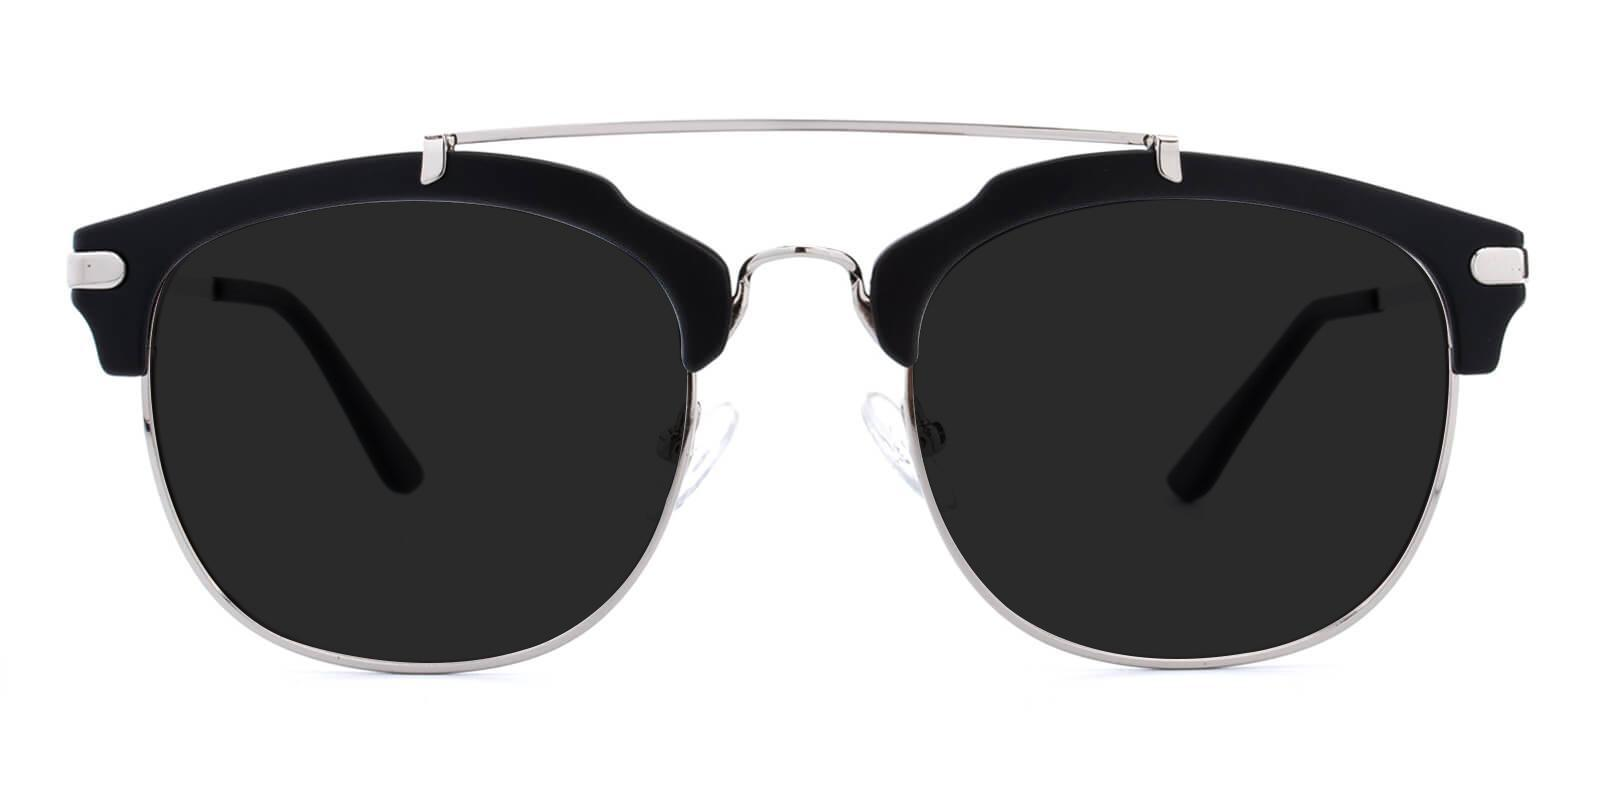 Icychem-Black-Browline-Acetate-Sunglasses-additional2